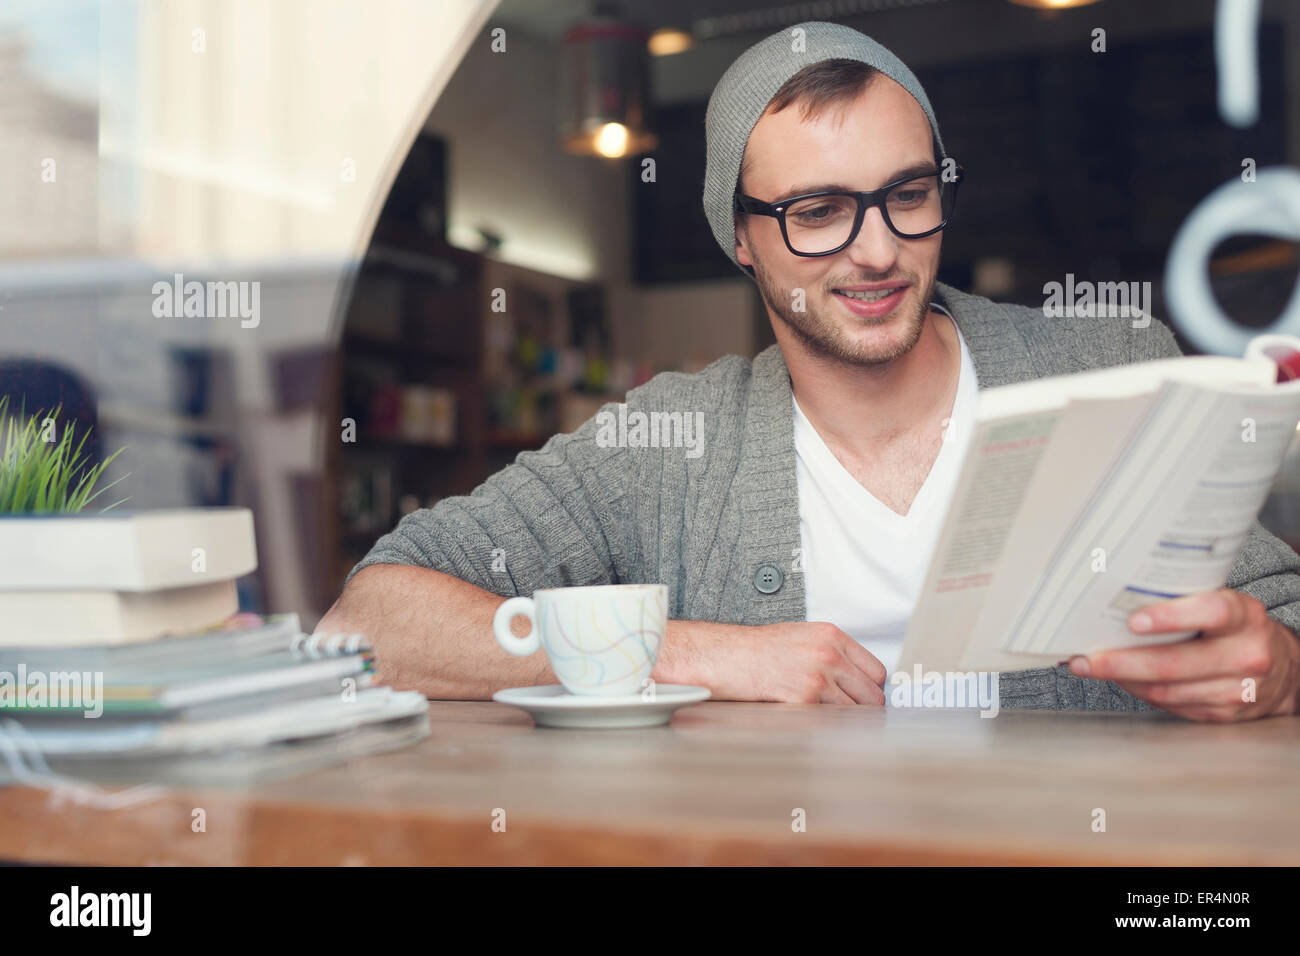 Smiling hipster man reading book at cafe. Krakow, Poland - Stock Image